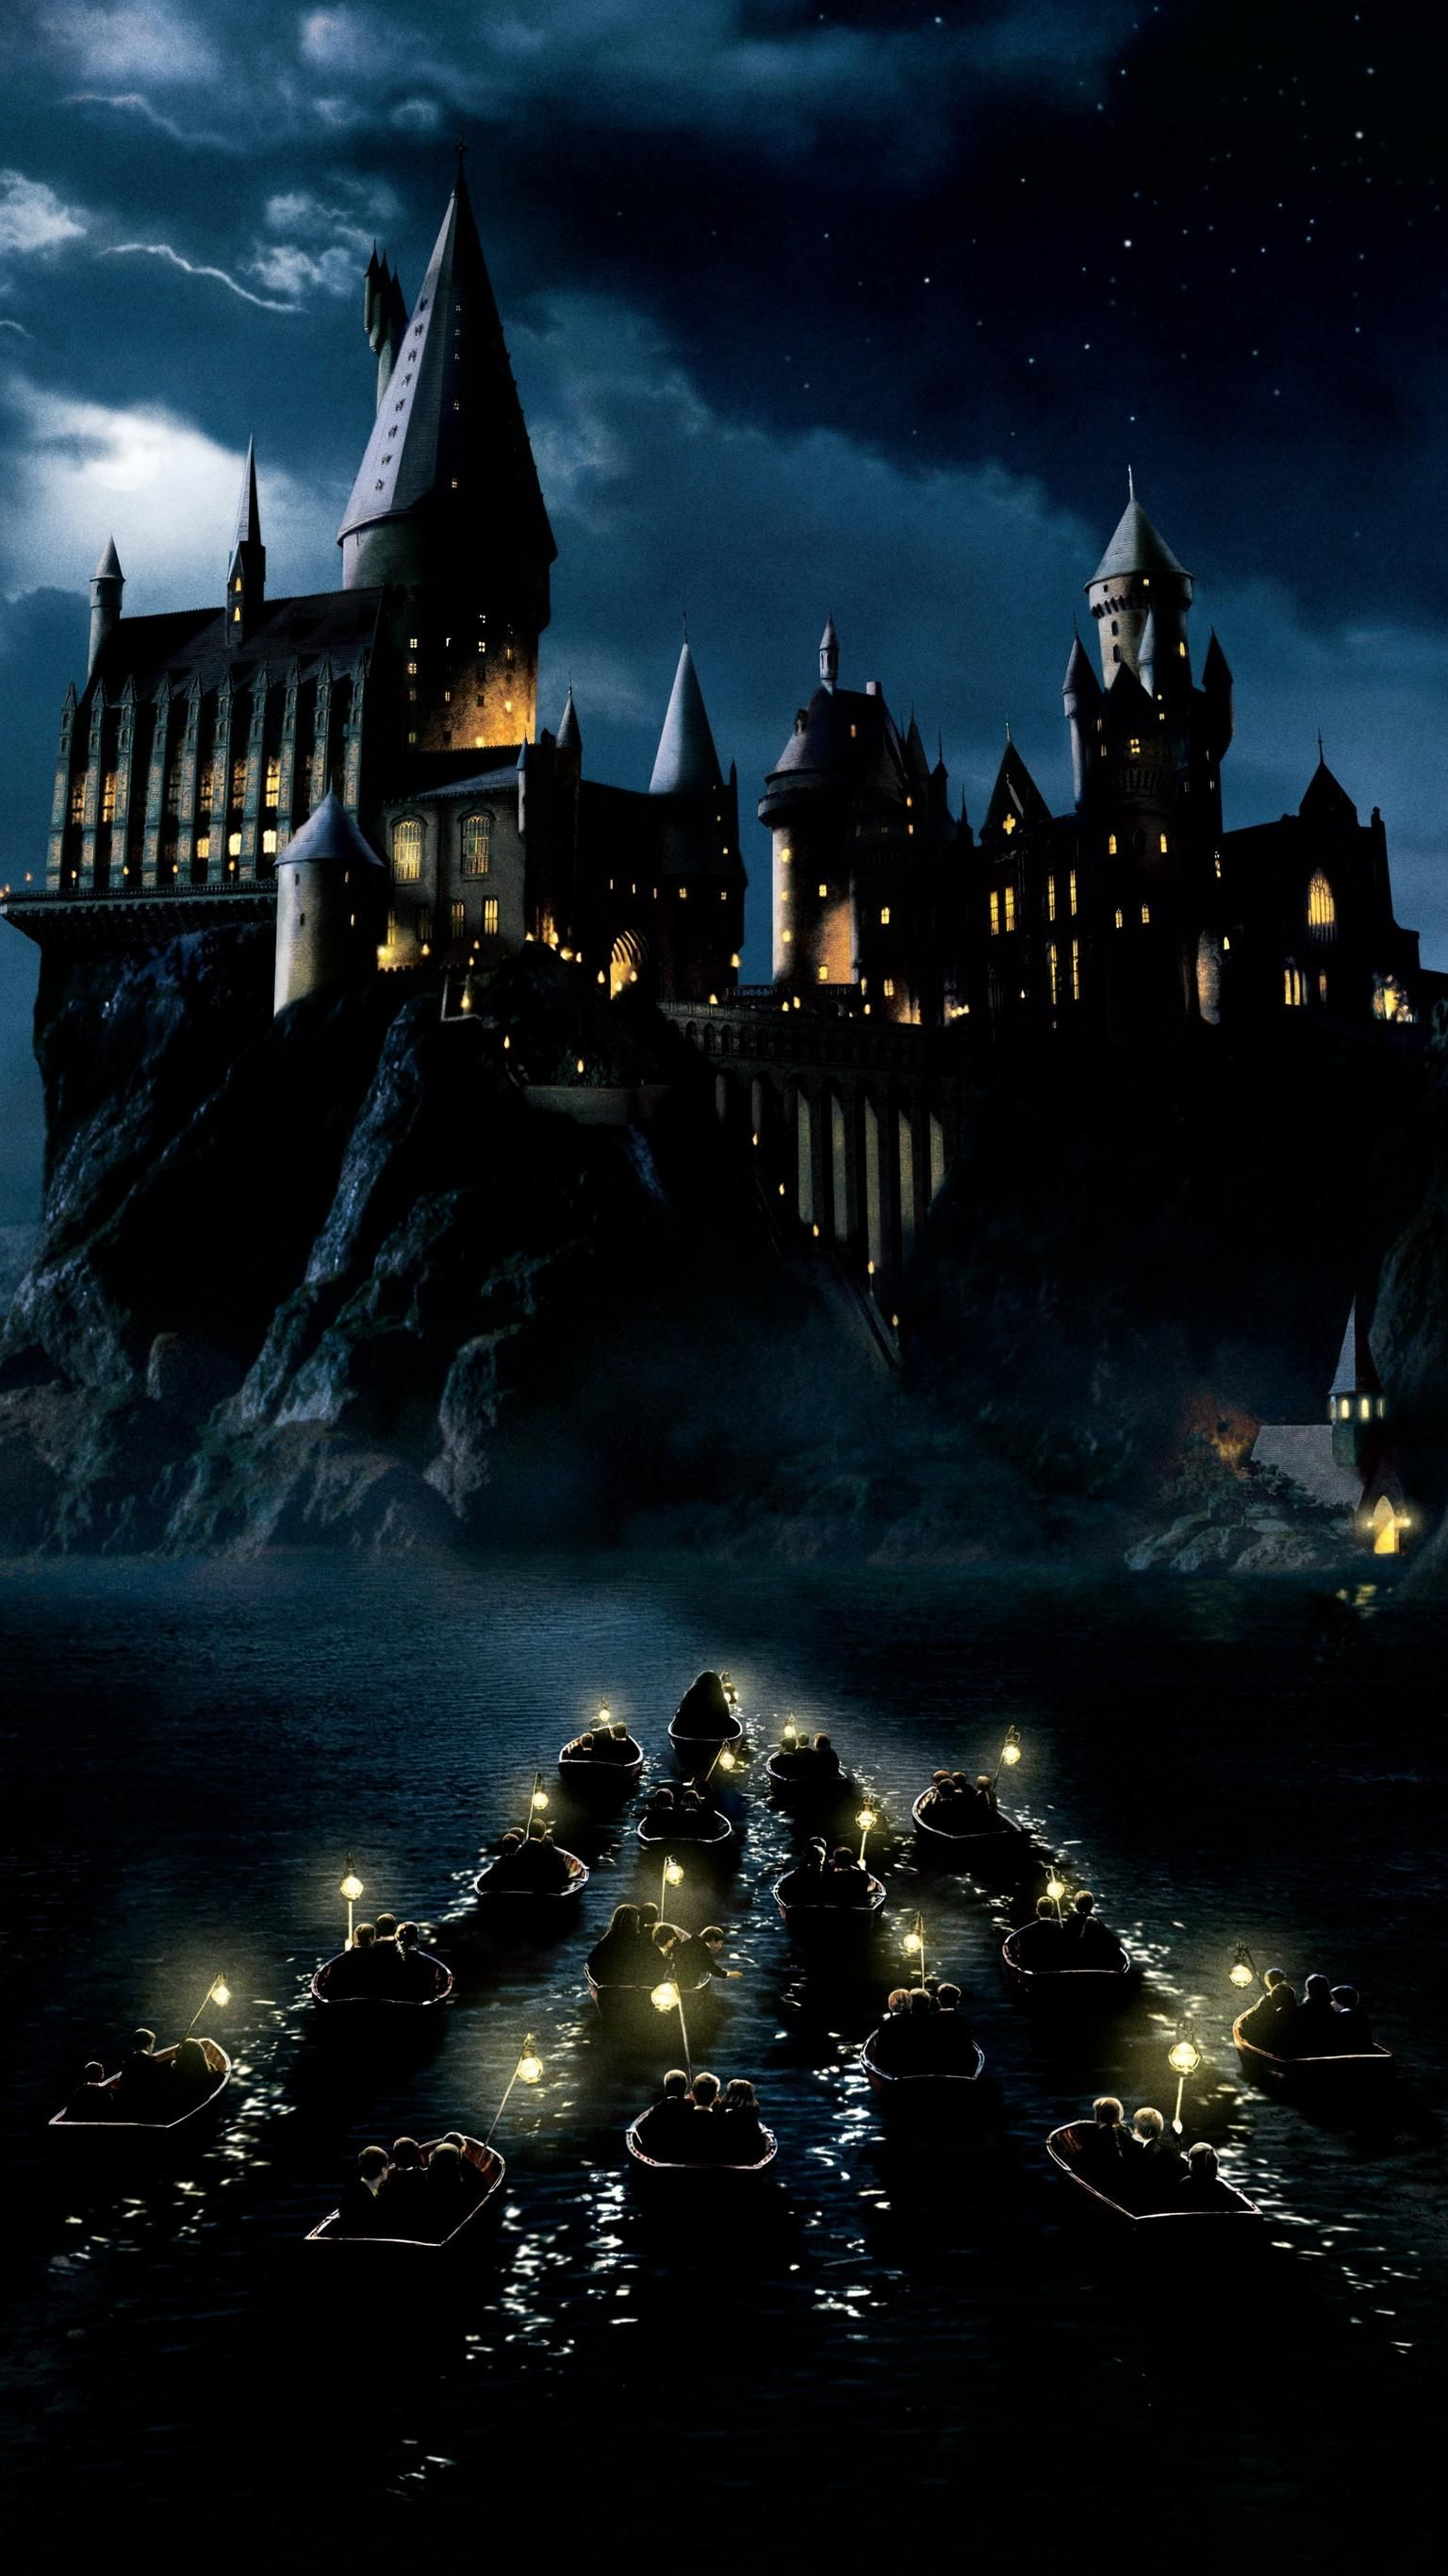 Harry Potter And The Philosopher S Stone 2001 Phone Wallpaper Moviemania Harry Potter Background Harry Potter Hogwarts Castle Harry Potter Castle